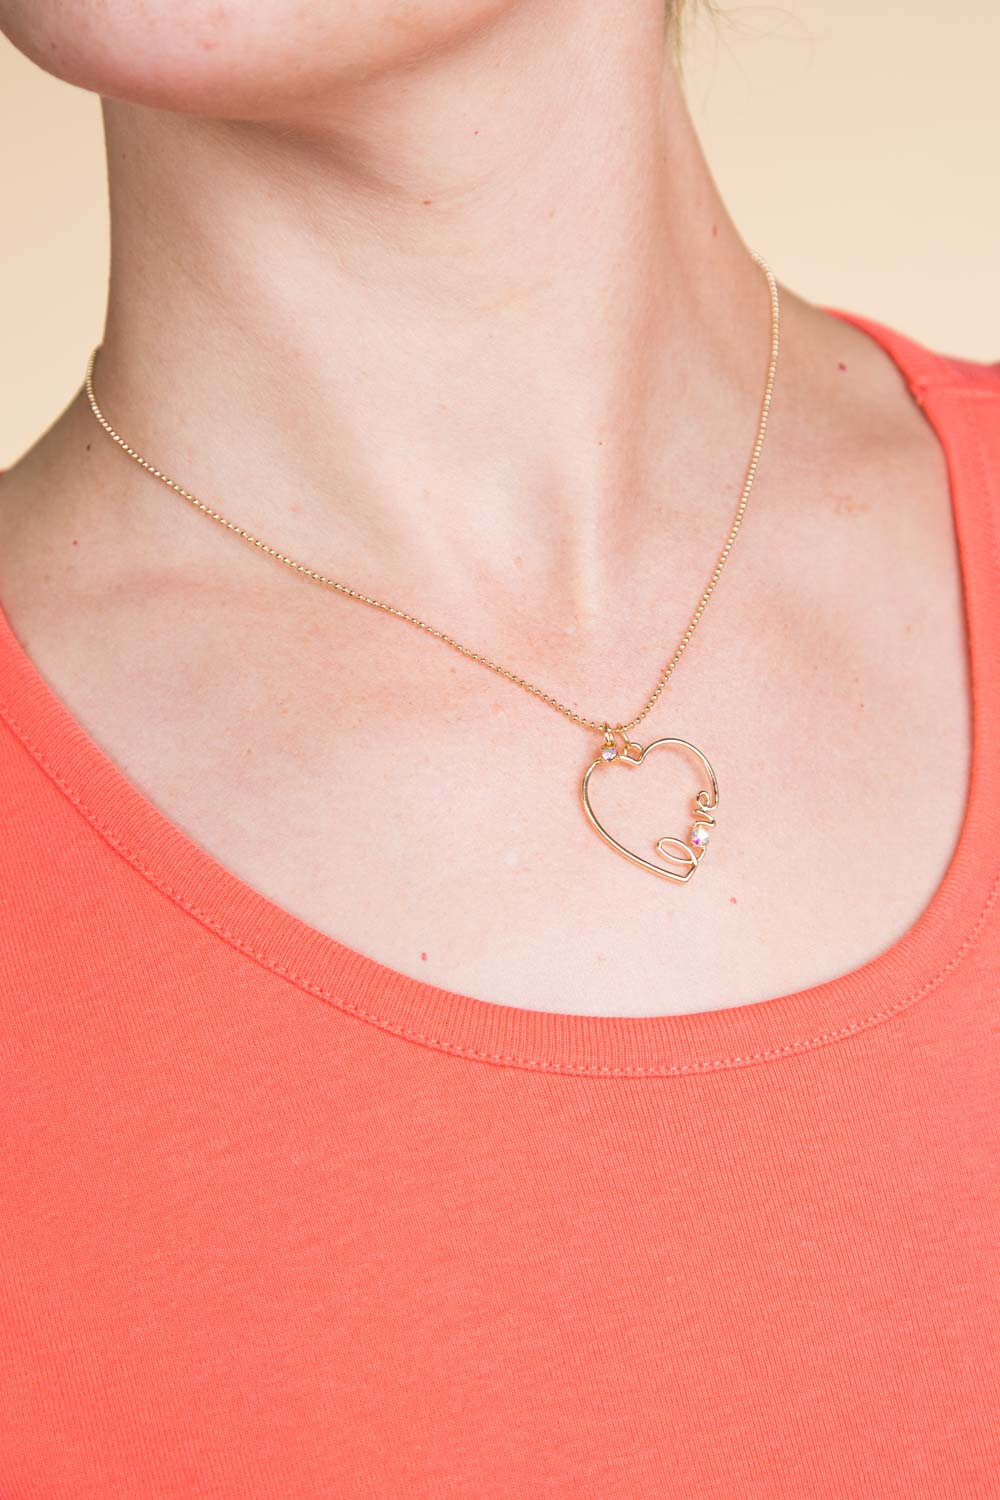 Type 1 Love'n The Heart Necklace